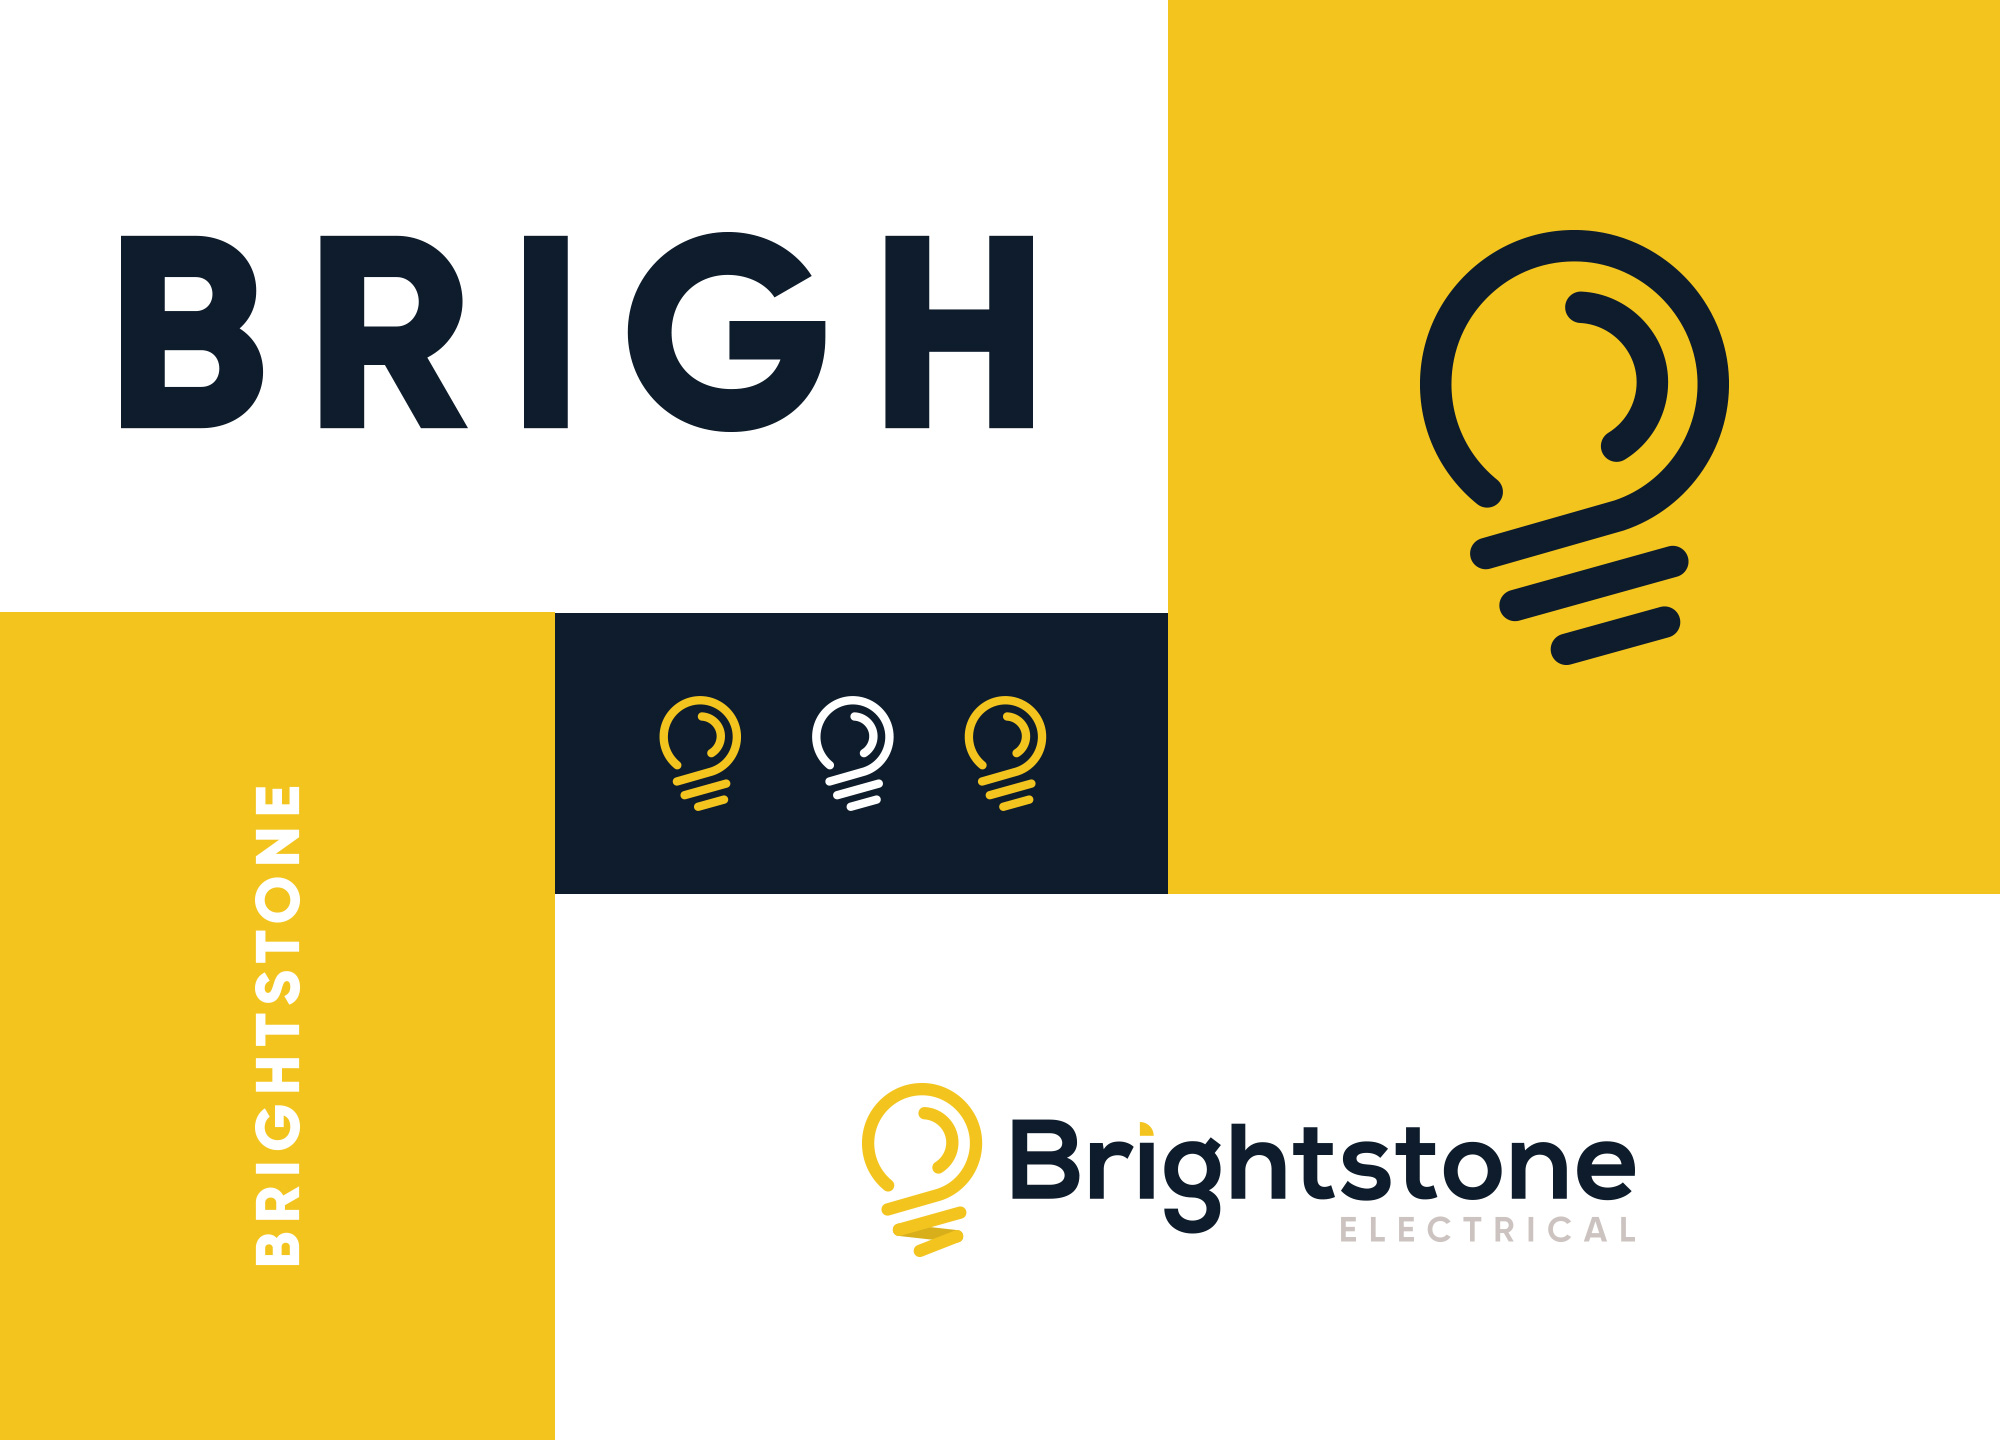 Brightstone Electrical Branding